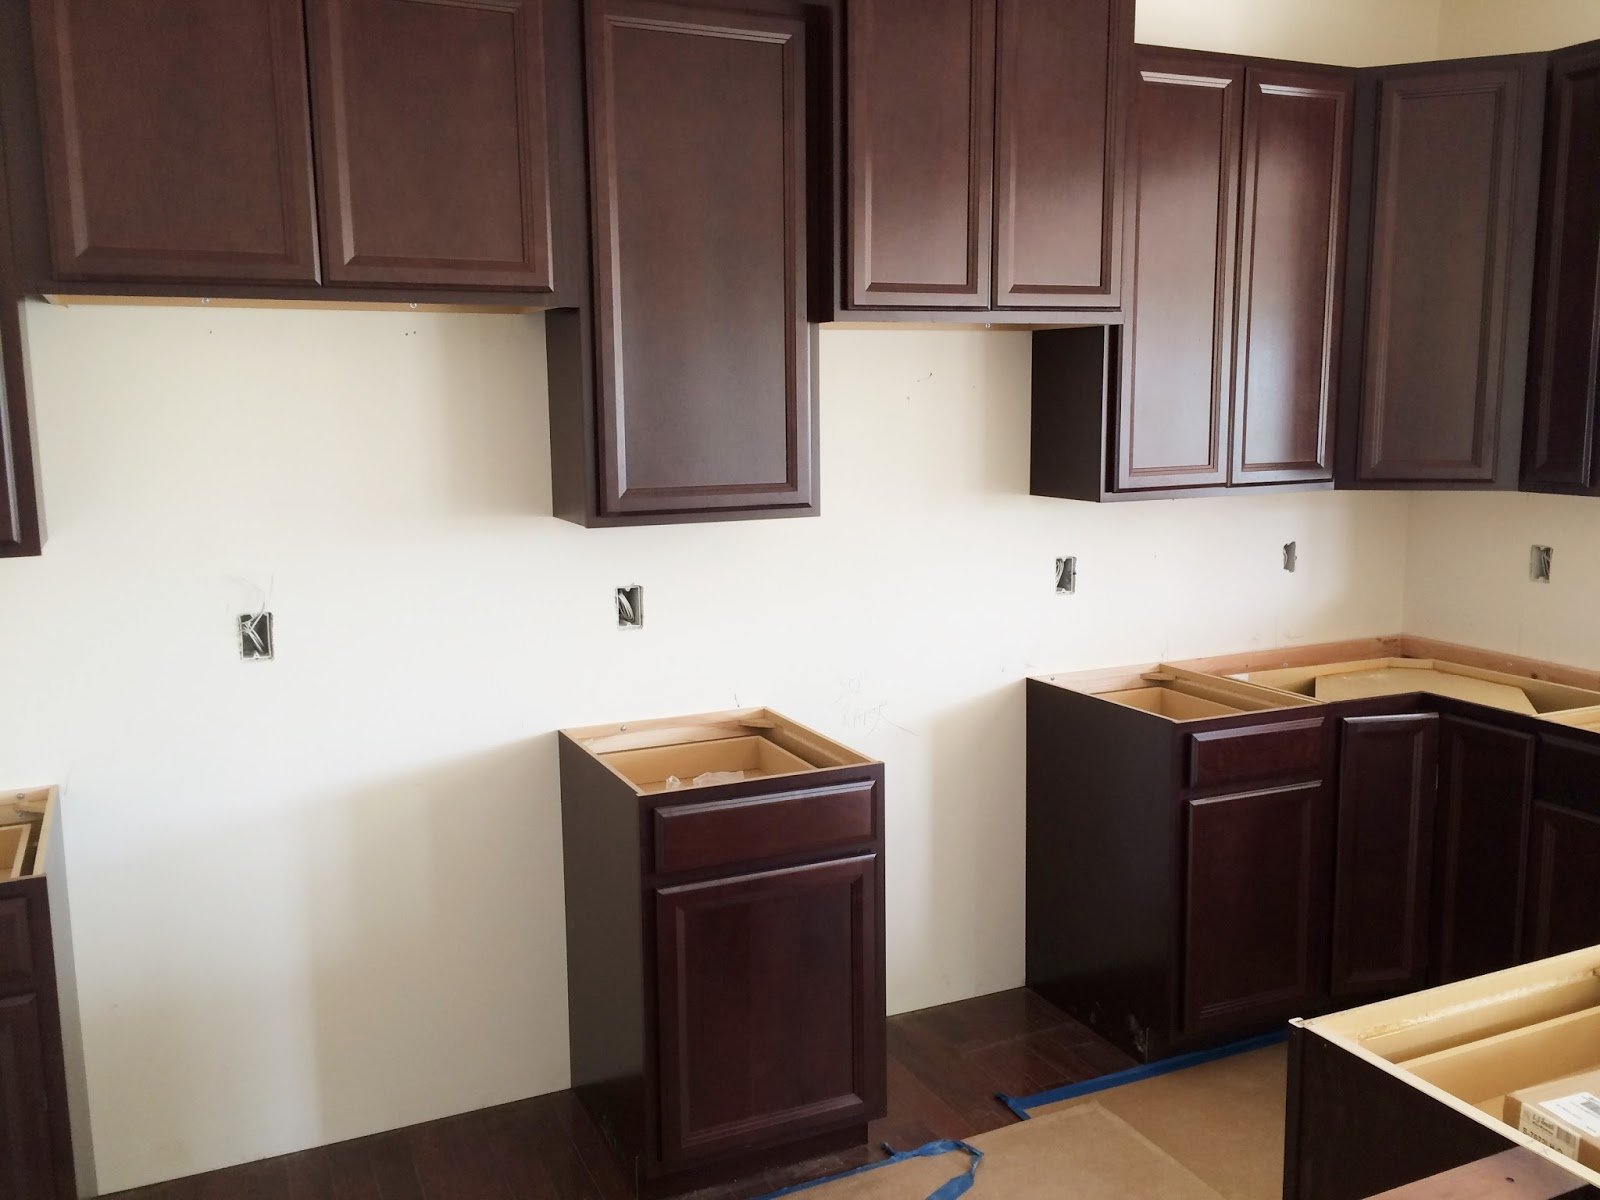 Ryan Homes Milan: New Home Construction Experience